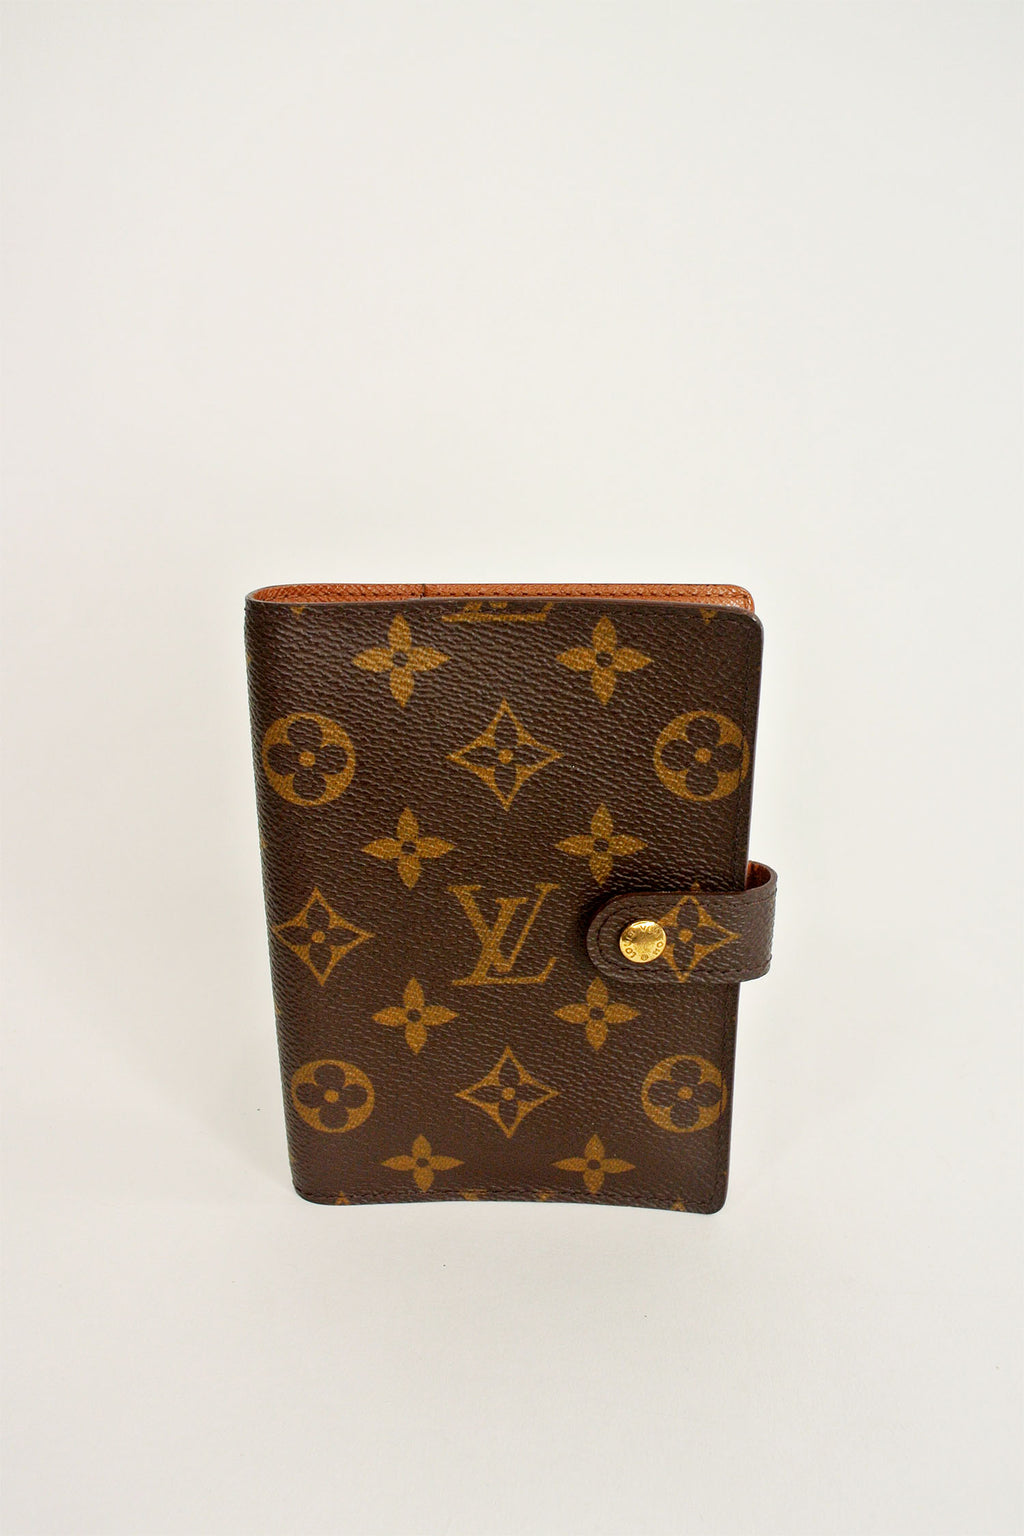 Louis Vuitton Monogram Agenda Pm